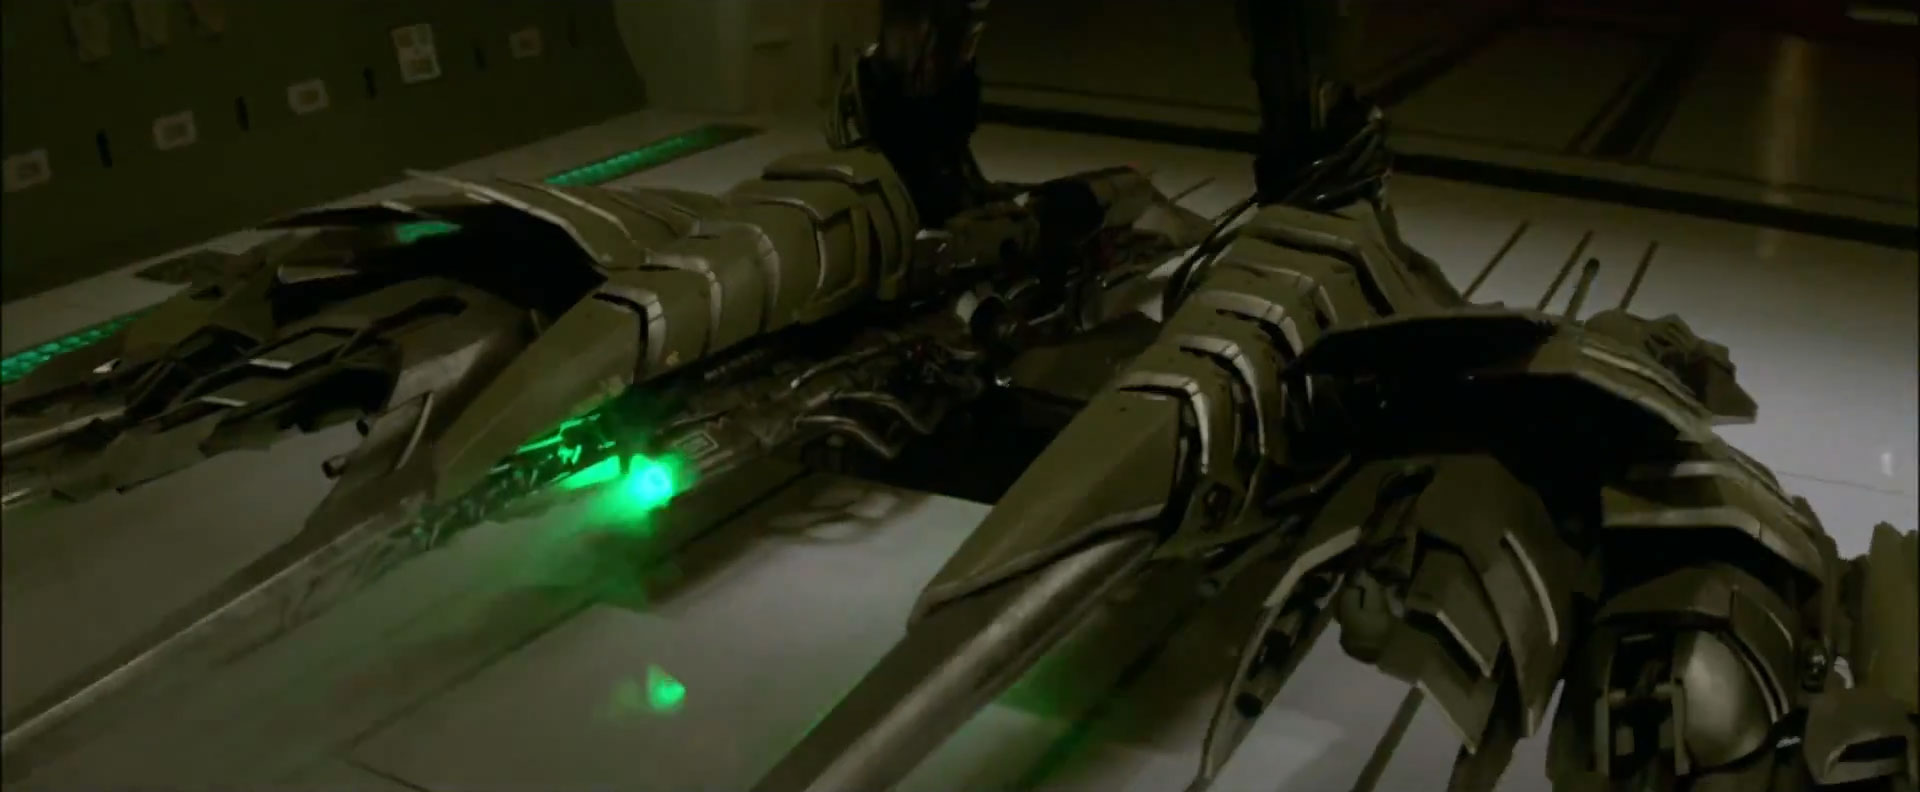 The Goblin Glider is a an object made by Oscorp which is used for    The Amazing Spider Man 2 Green Goblin Glider